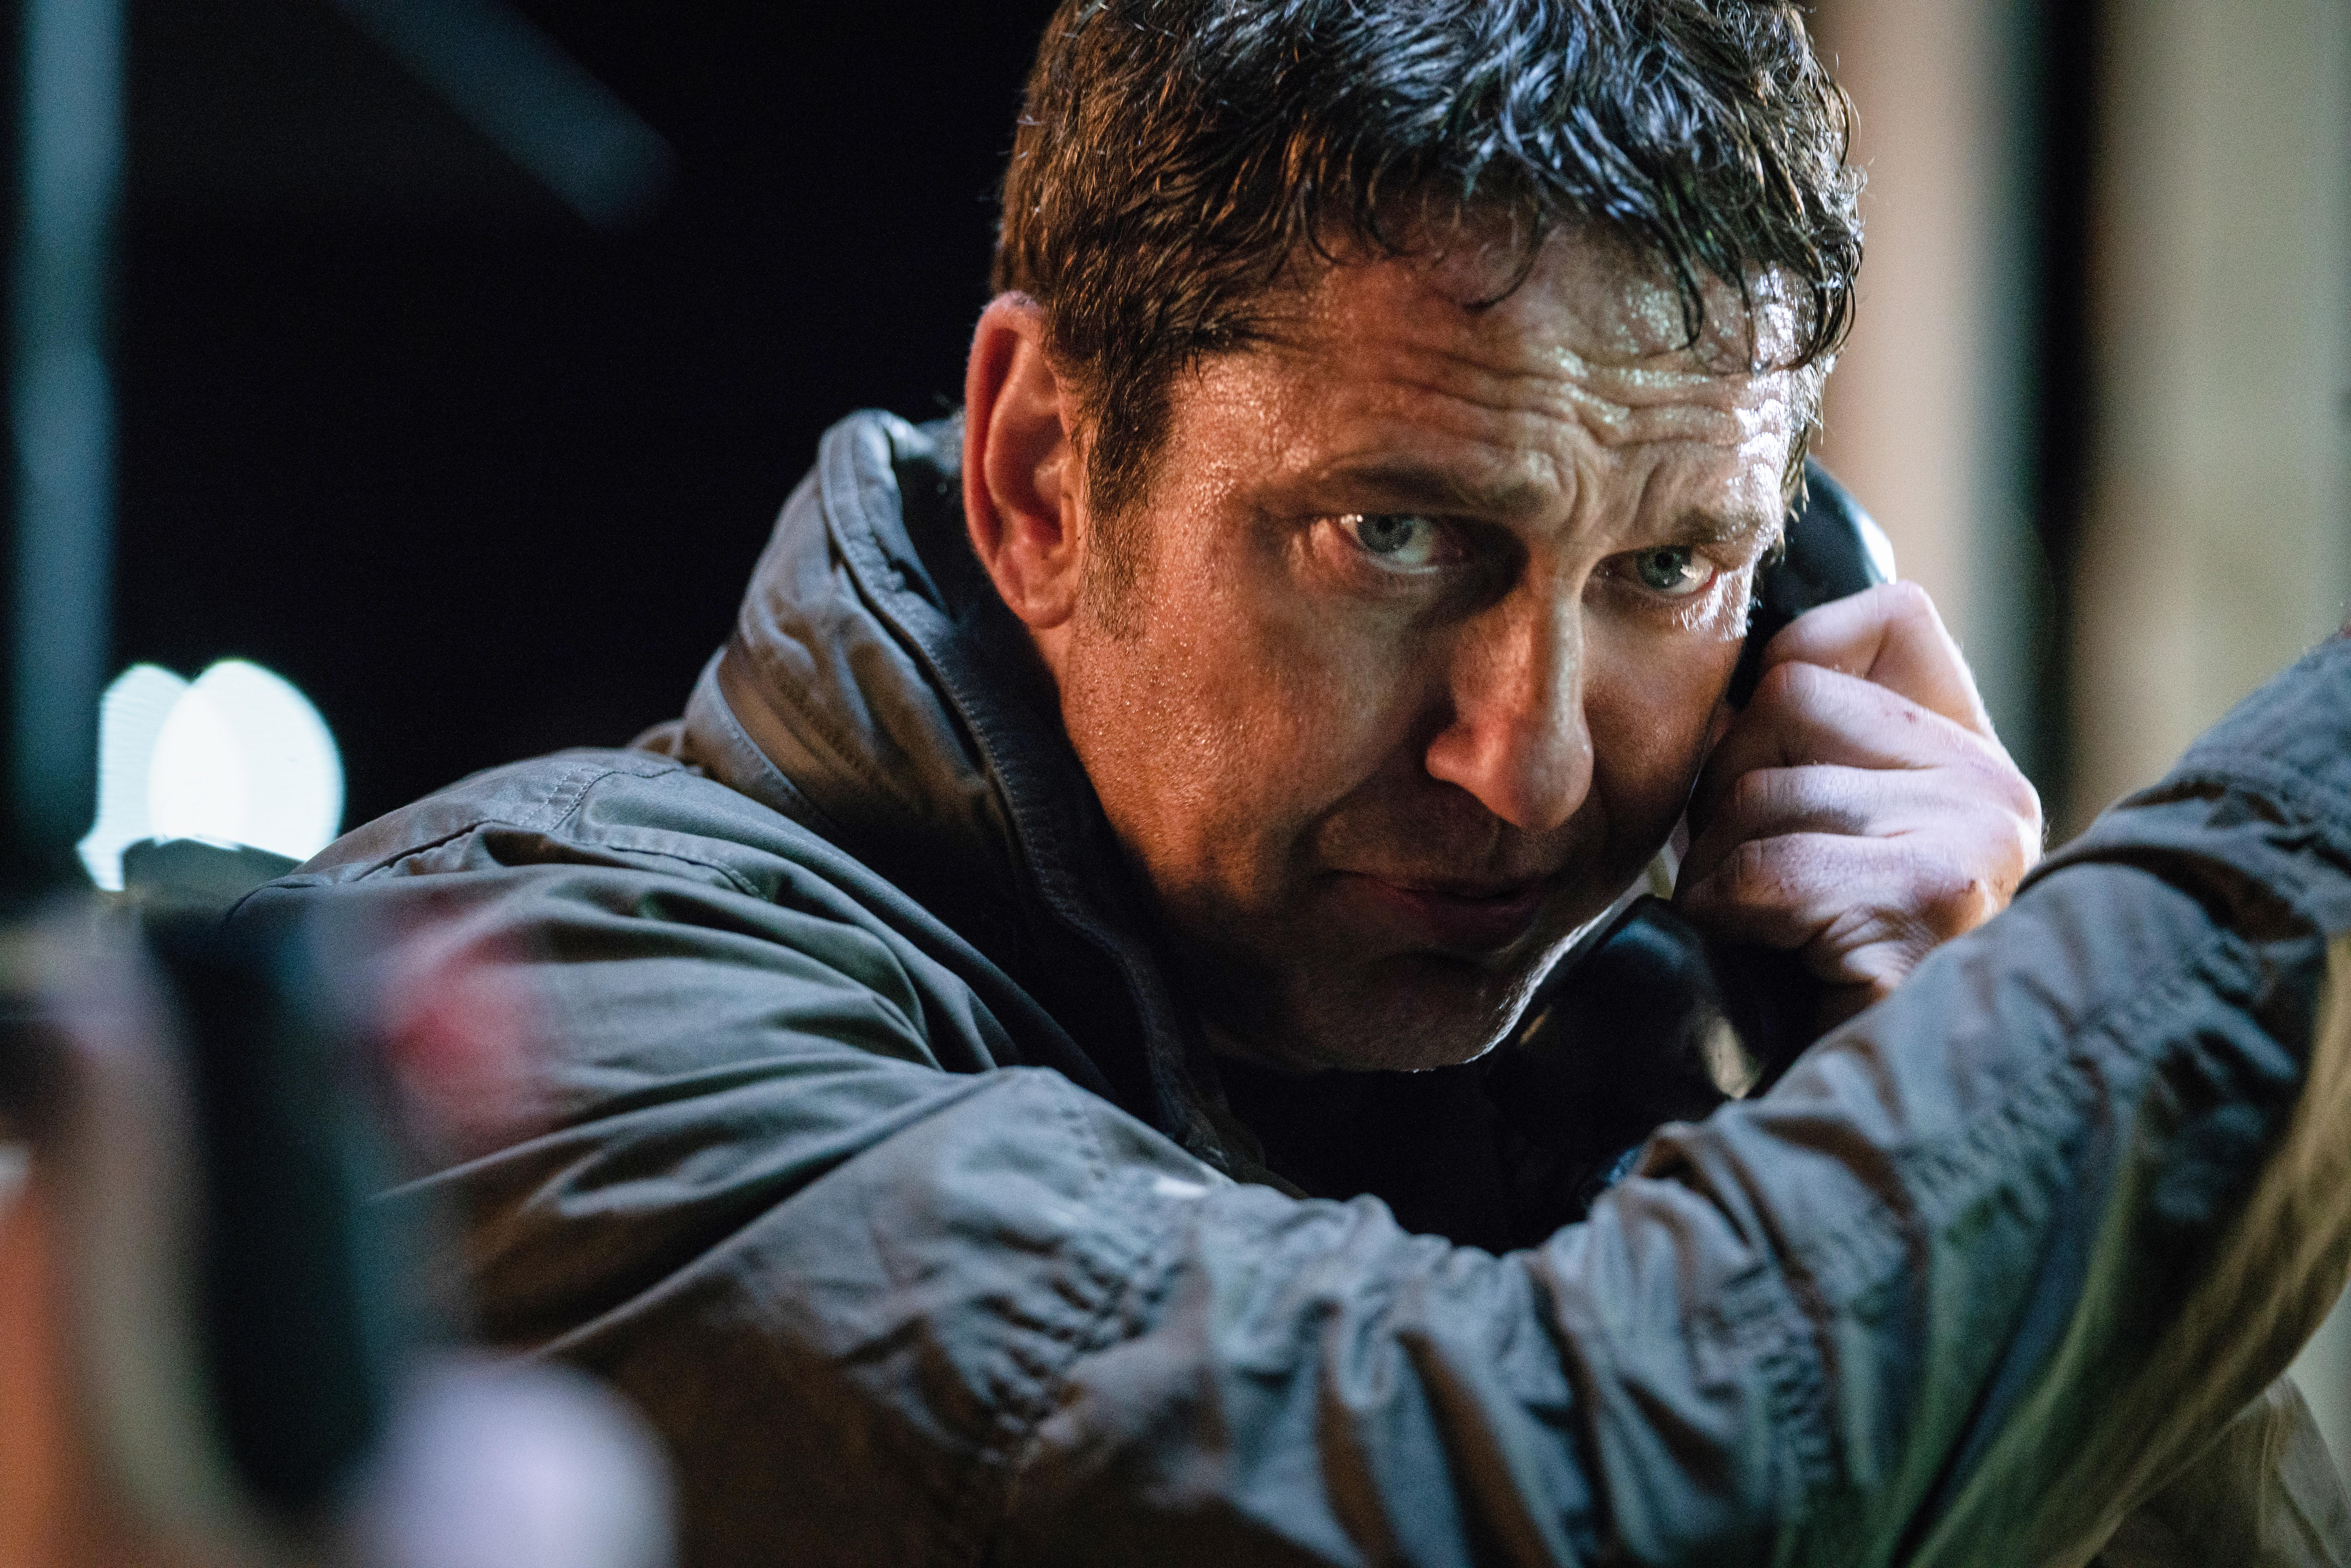 Gerard Butler stars as 'Mike Banning' in ANGEL HAS FALLEN. (Photo Credit: Simon Varsano)